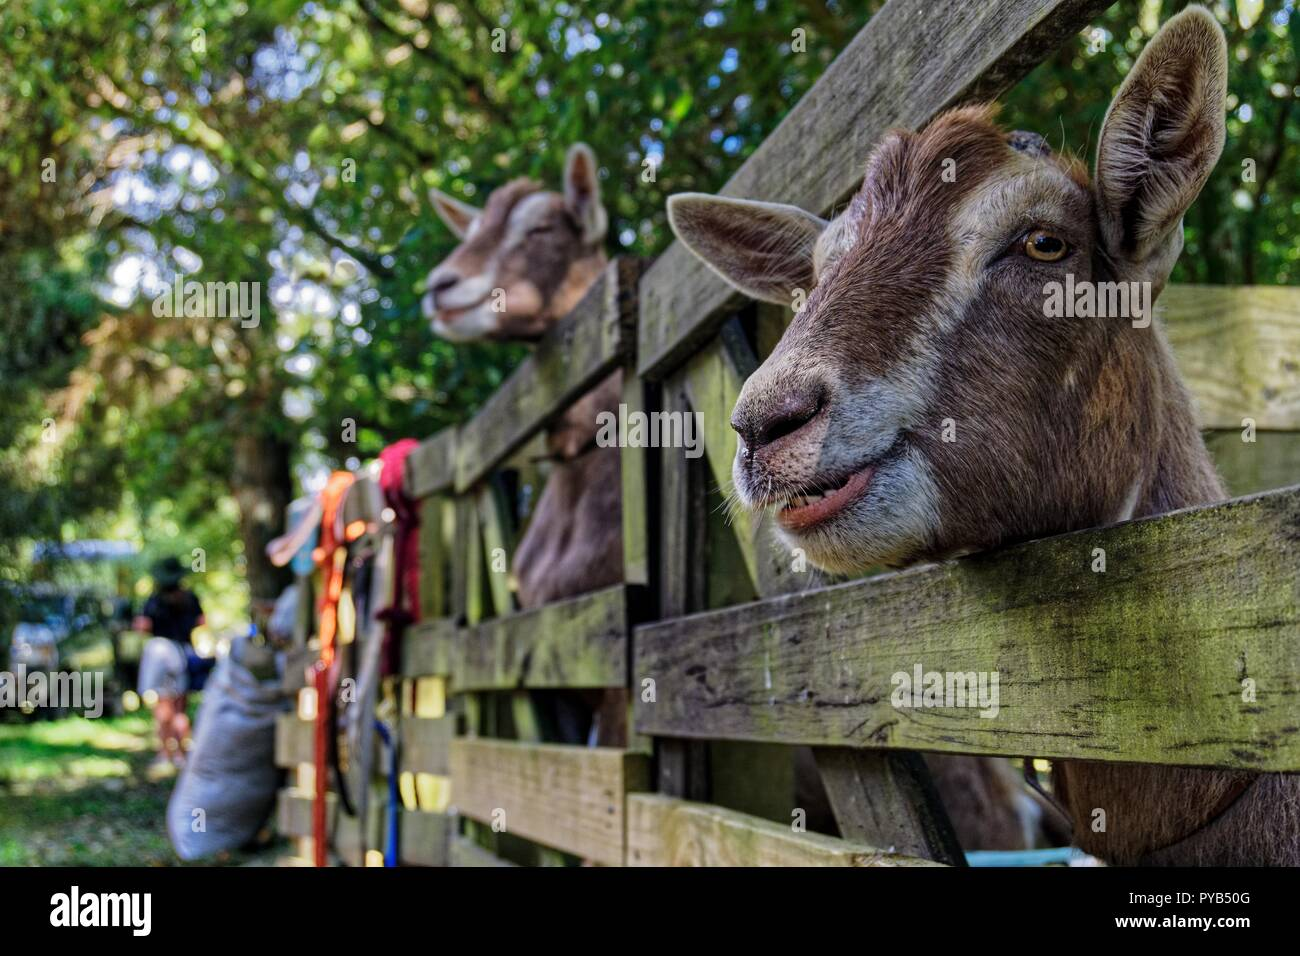 Smiling goat at an agricultural show, Motueka, New Zealand - Stock Image